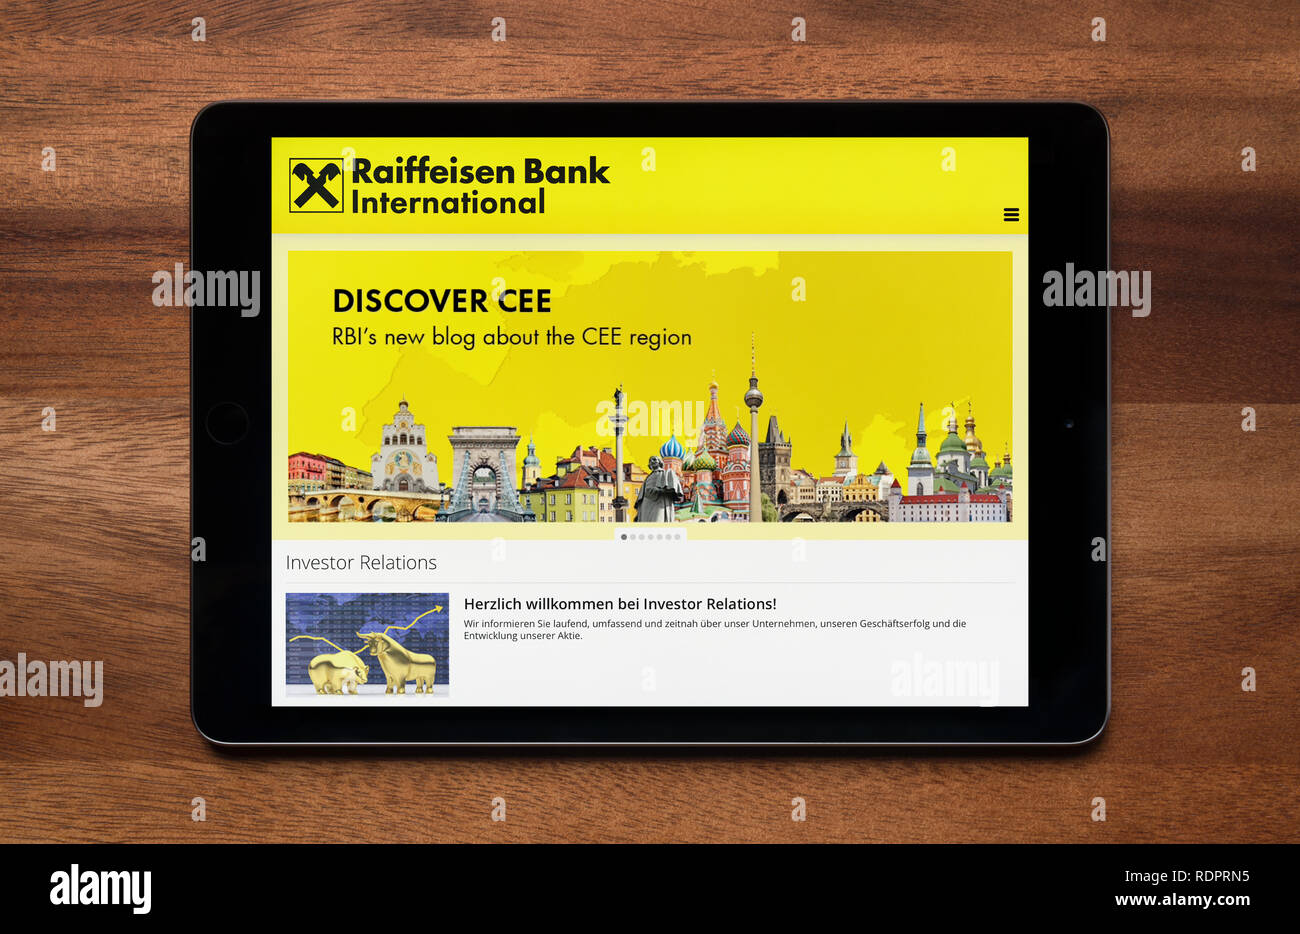 The website of Raiffeisen Bank International is seen on an iPad tablet, which is resting on a wooden table (Editorial use only). - Stock Image